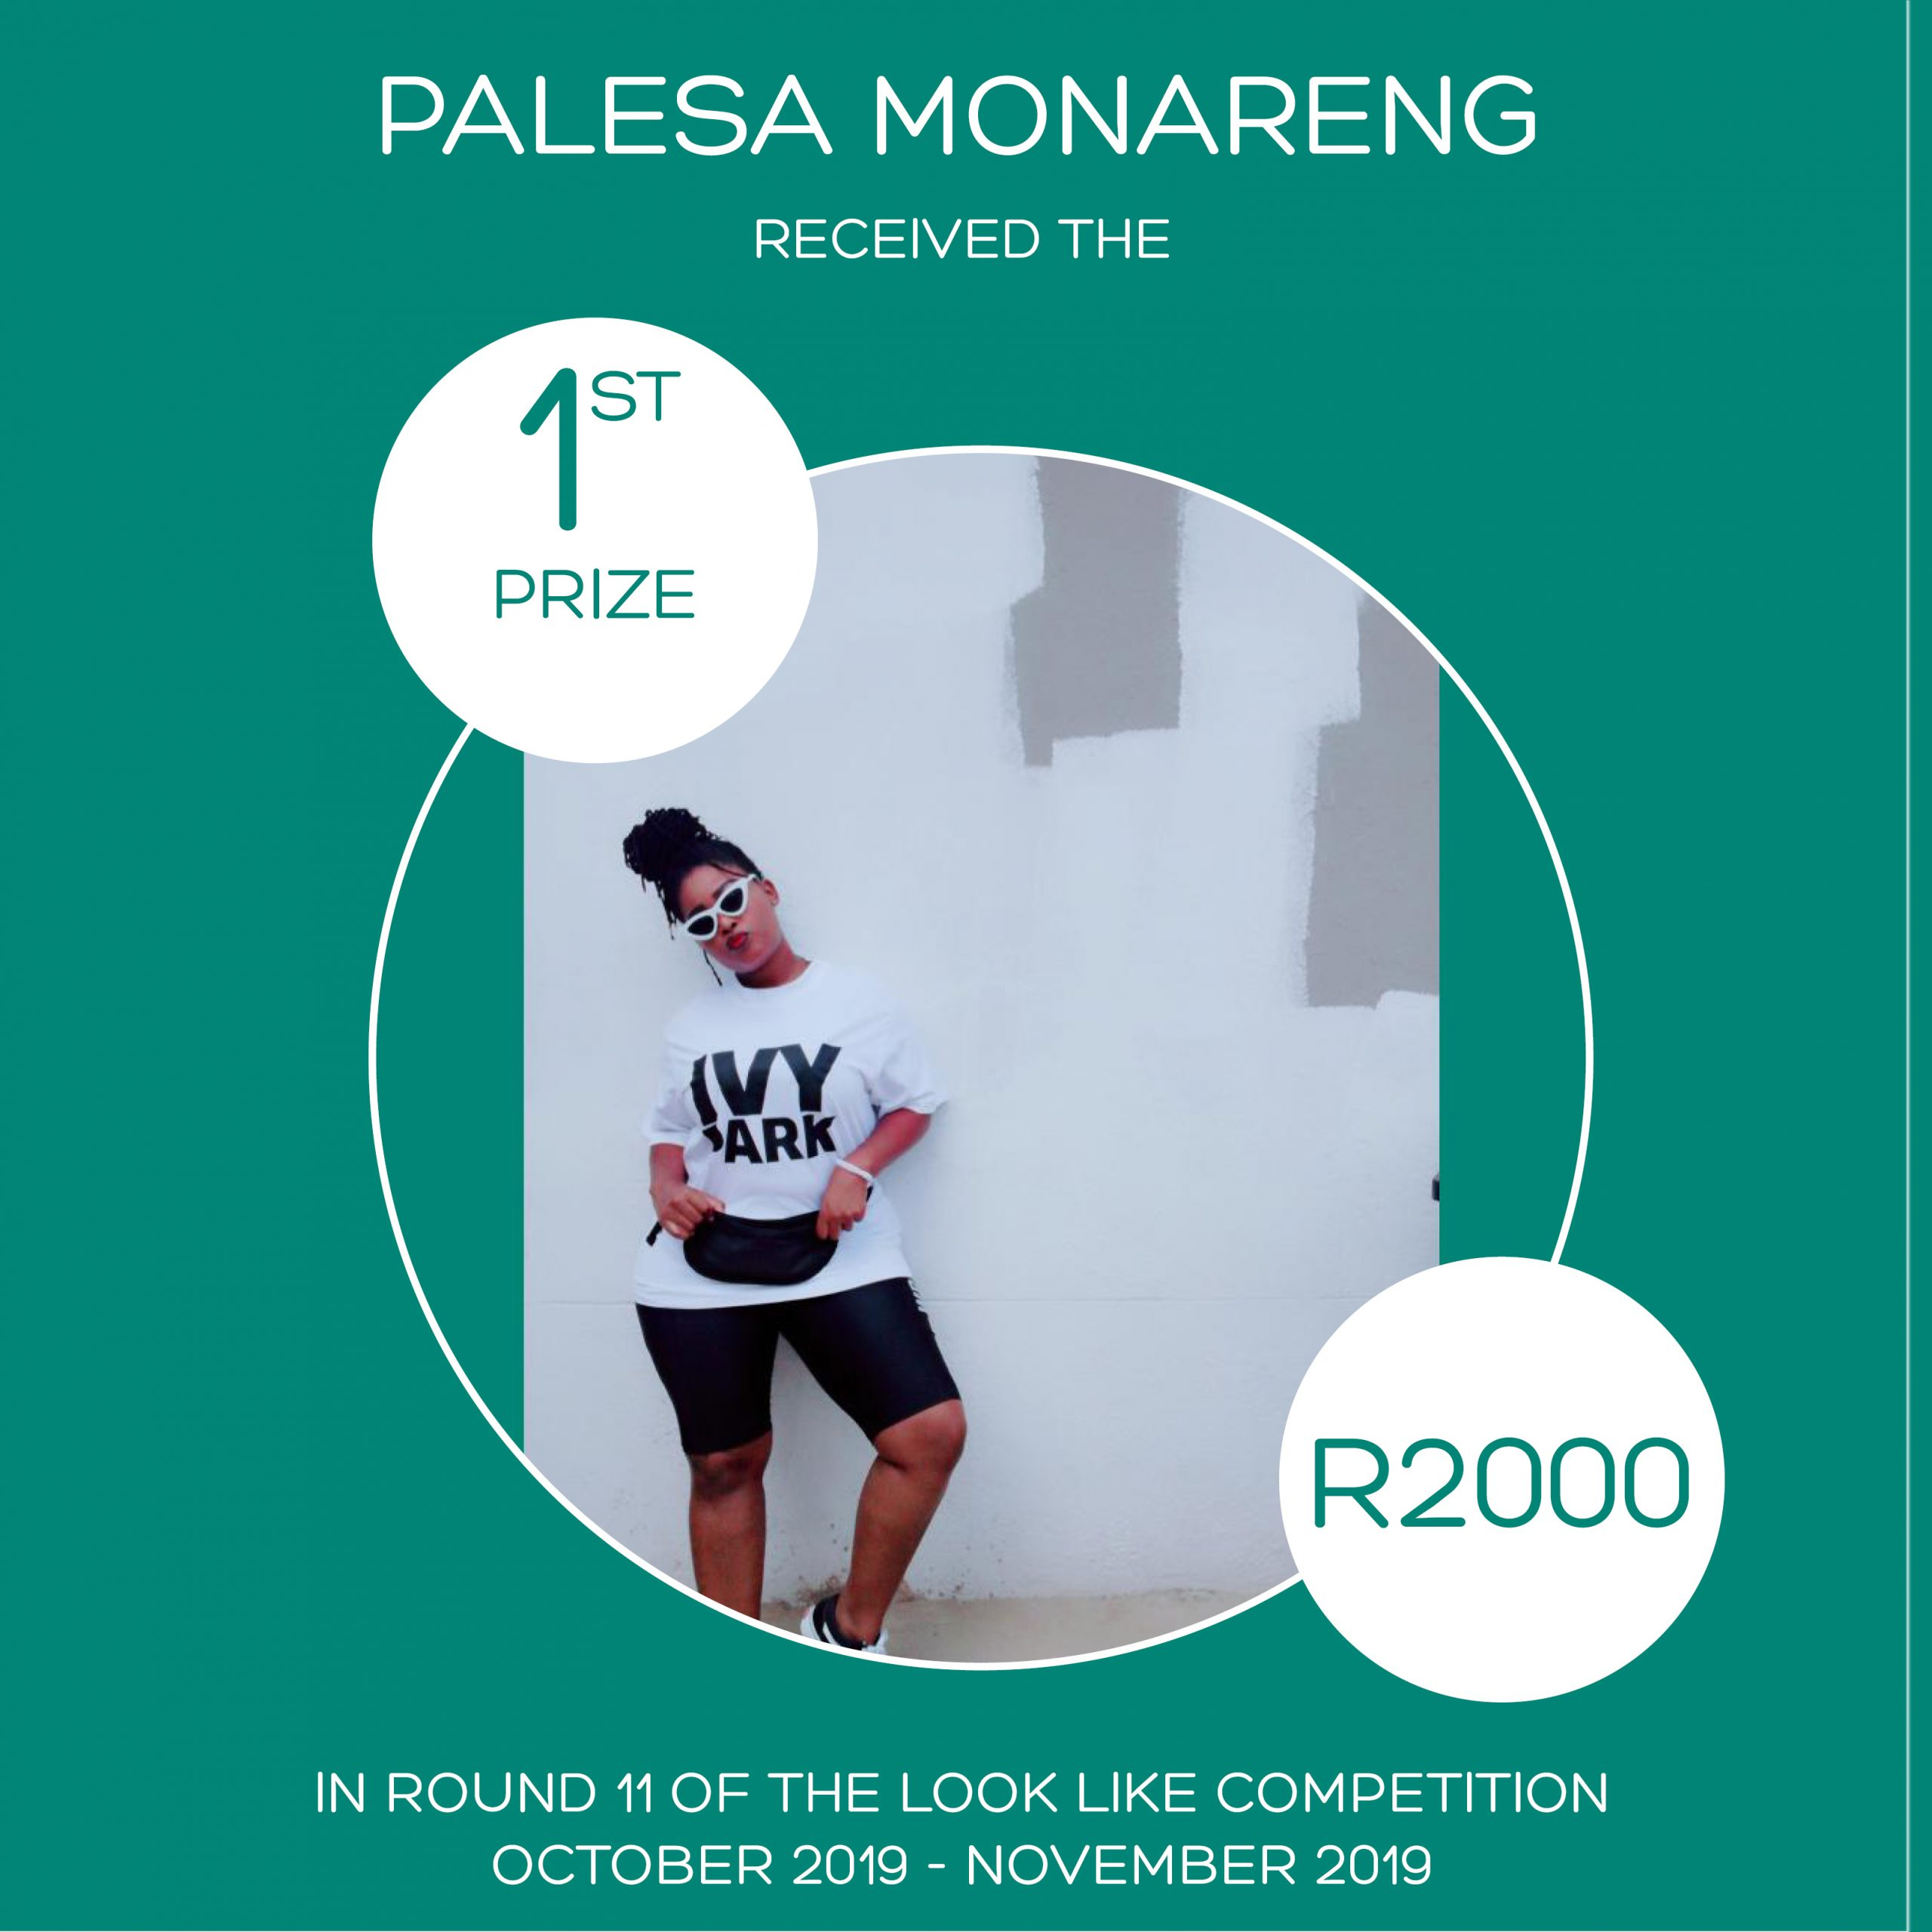 ROUND 11 – FLASH FASHION ROUND – 1ST PRIZE – PALESA MONARENG